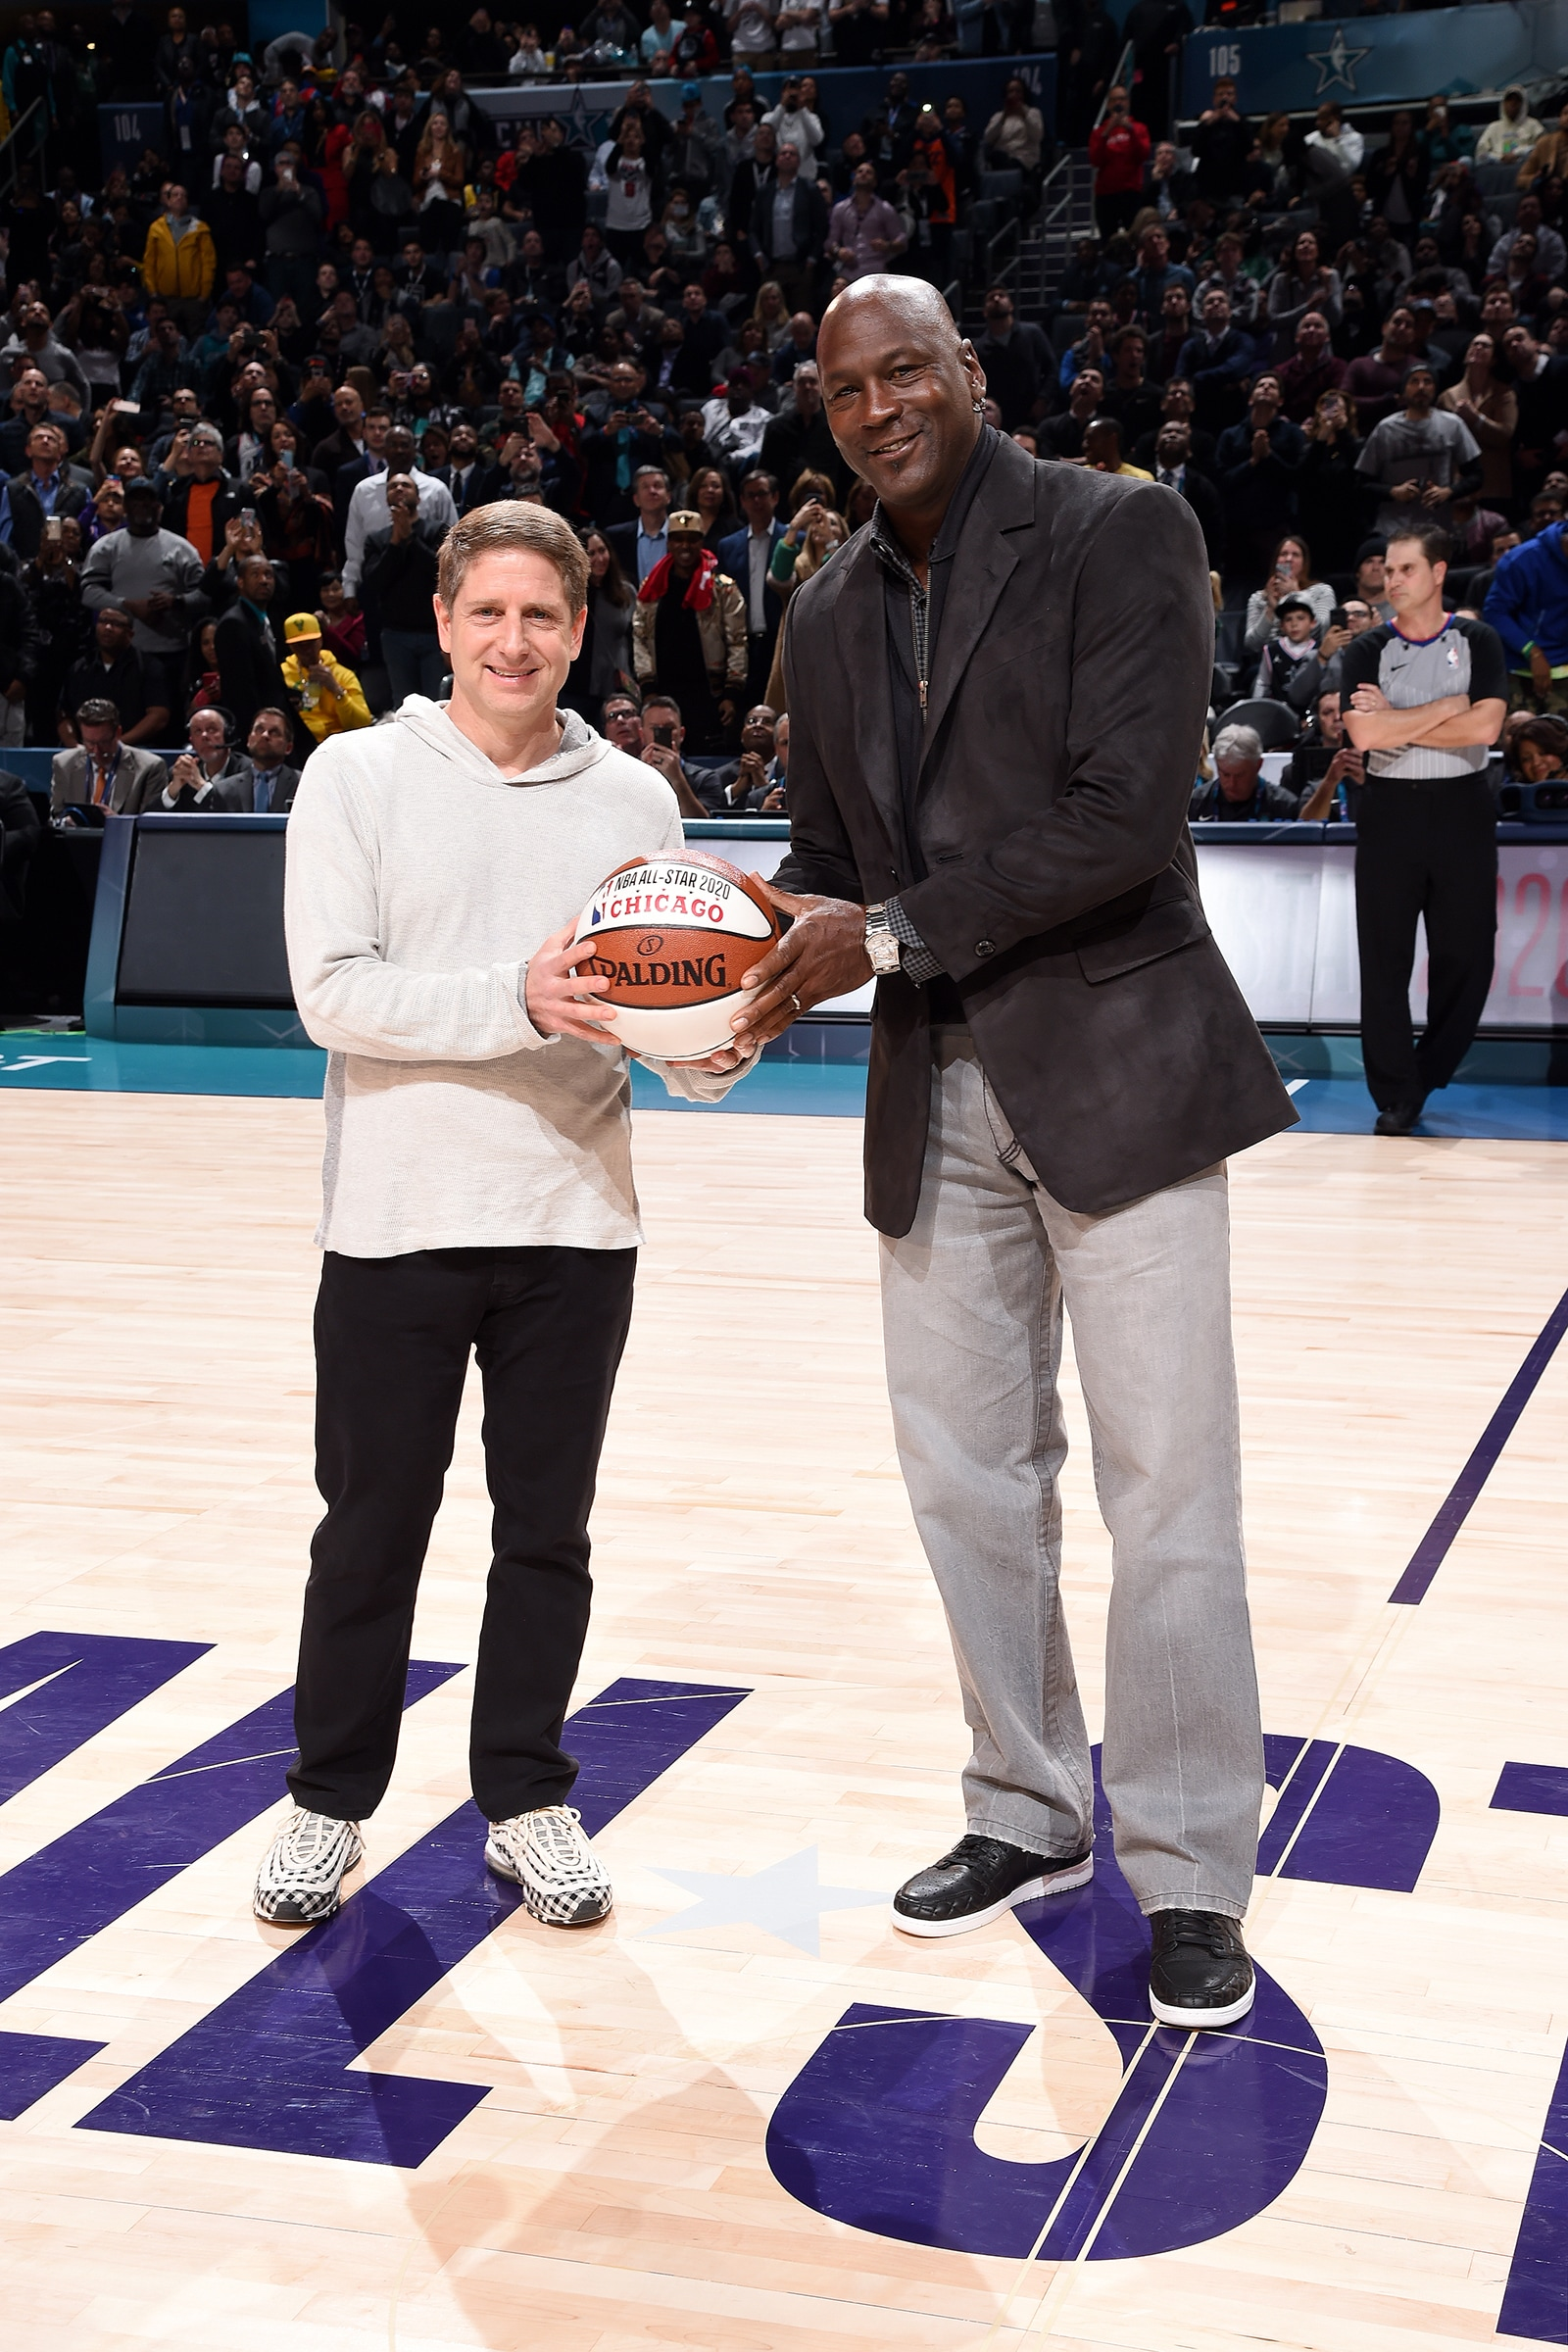 Michael Jordan passes the All-Star game ball over to Michael Reinsdorf